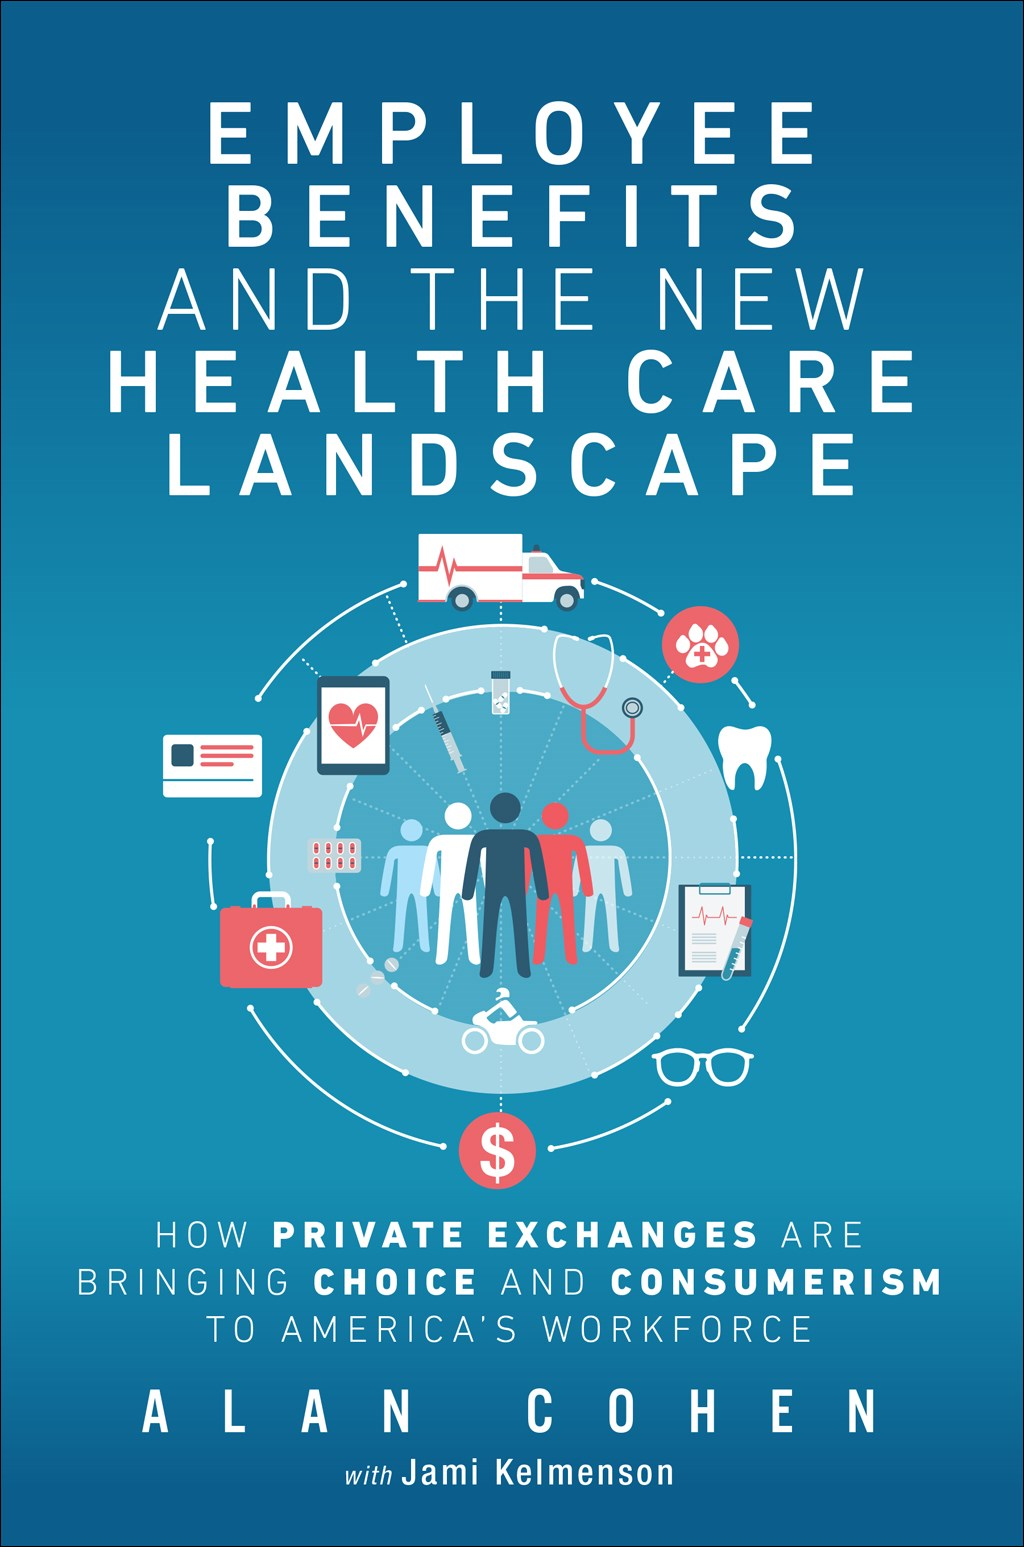 Employee Benefits and the New Health Care Landscape: How Private Exchanges are Bringing Choice and Consumerism to America's Workforce